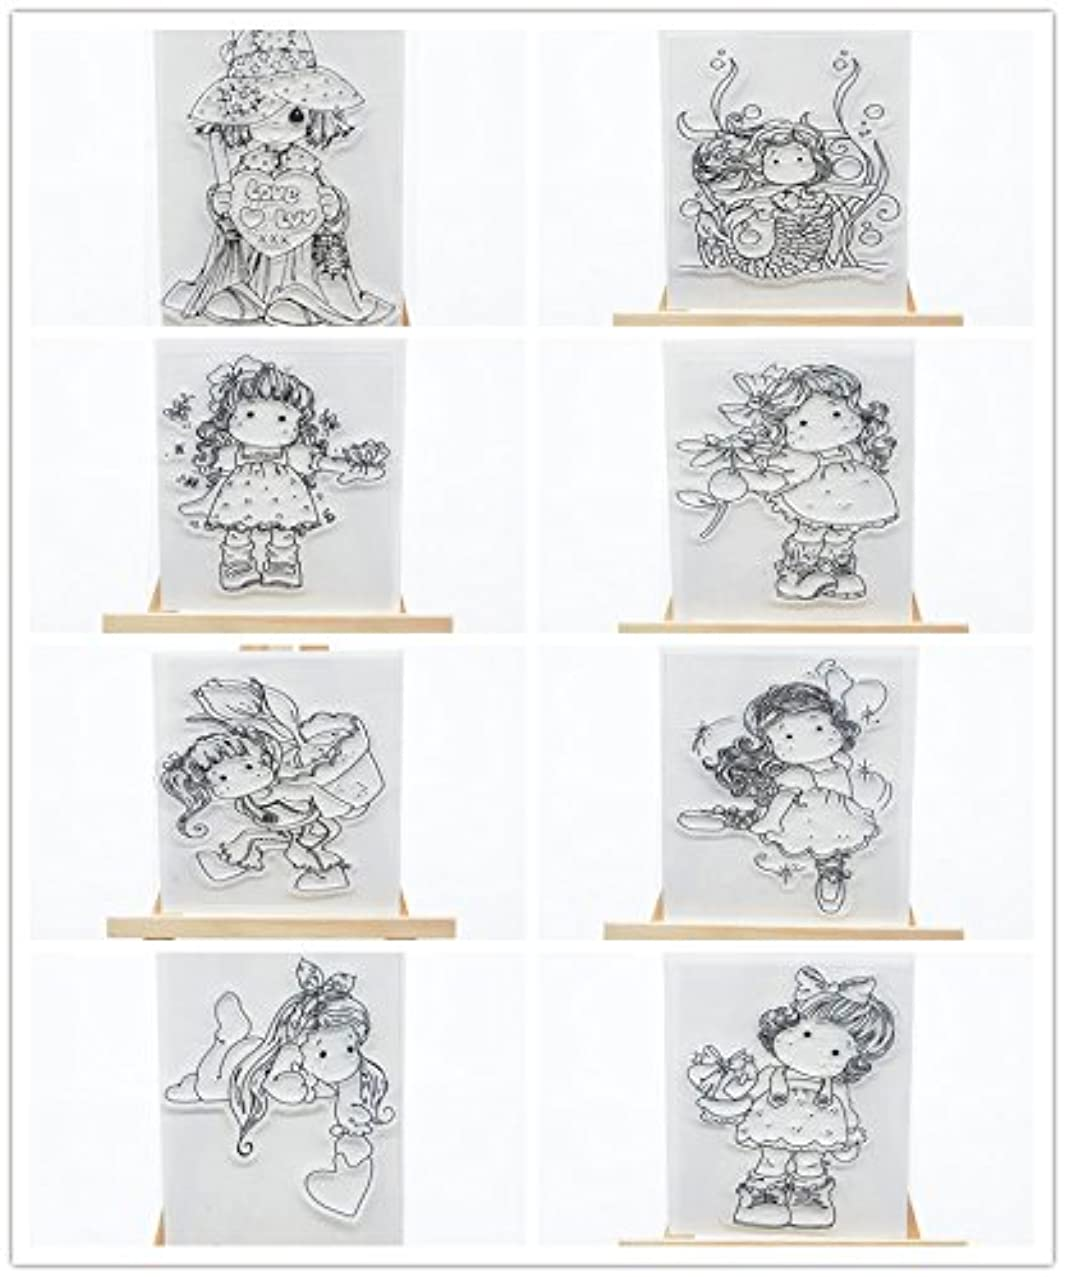 Welcome to Joyful Home 8pcs/Set Cute Girl Clear Stamp for Card Making Decoration and Scrapbooking